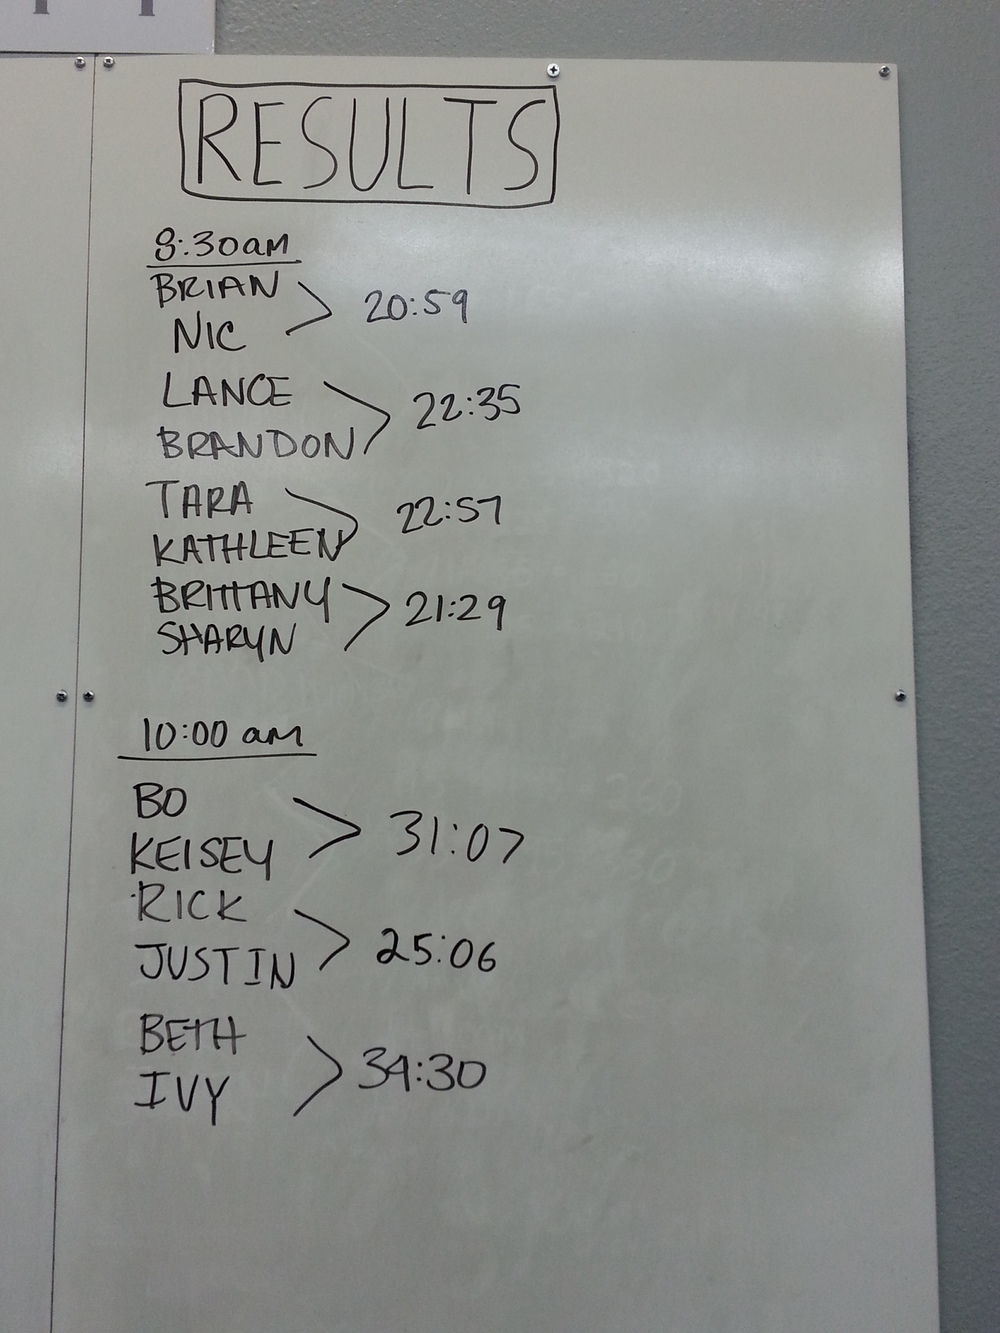 Results from Saturday's WOD!